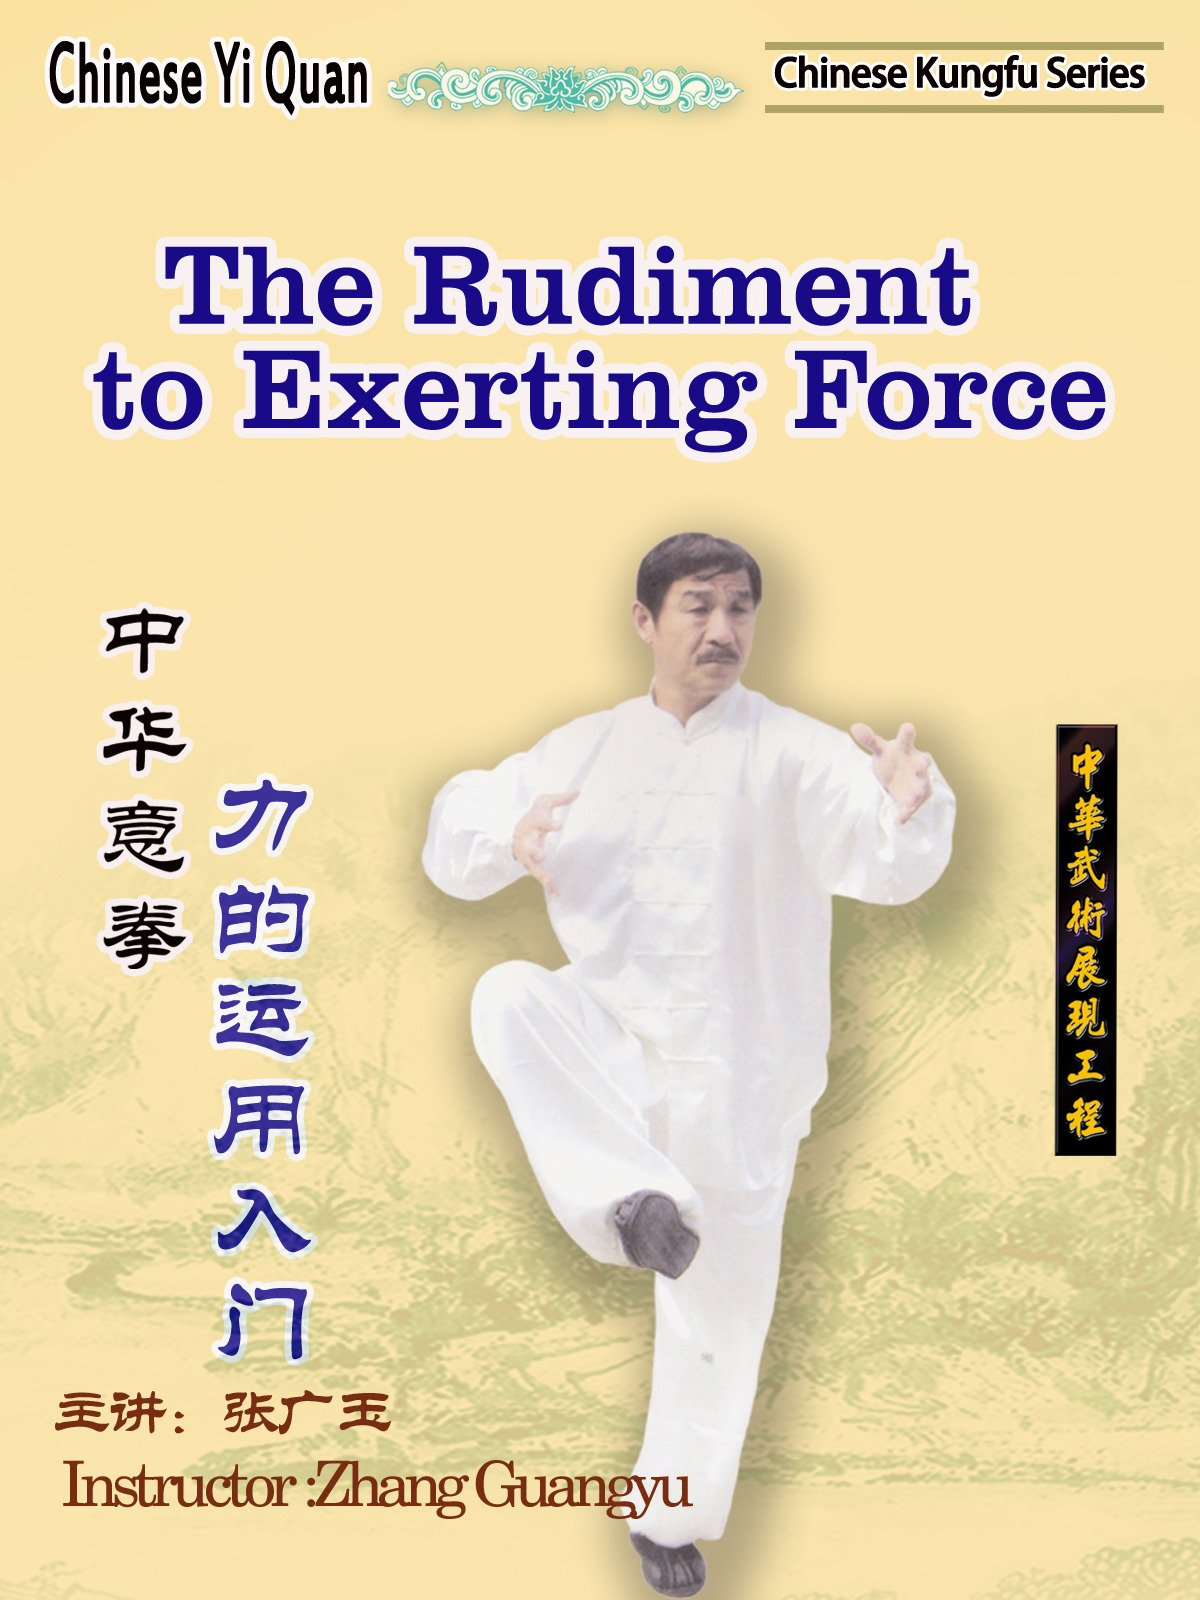 Chinese Yi Quan-The Rudiment to Exerting Force(Instructor :Zhang Guangyu)